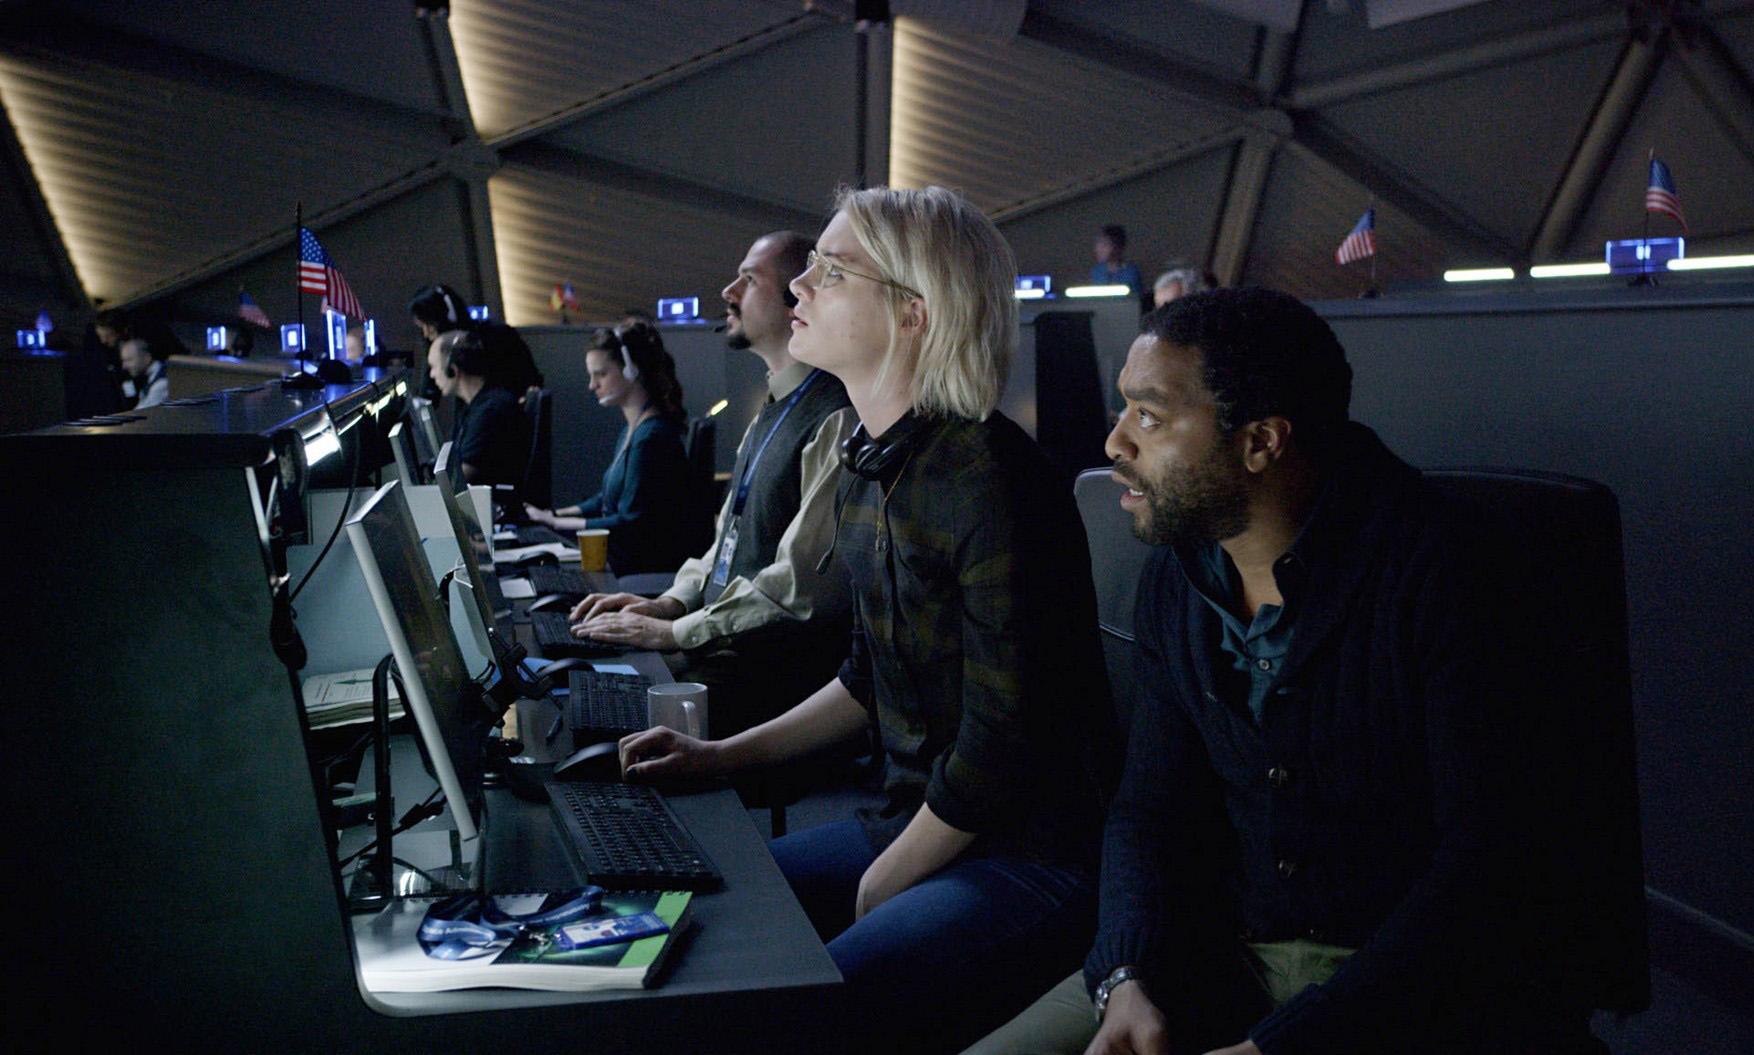 Mackenzie Davis (centre) and Chiwetel Ejiofor (right) play NASA scientists trying to get Watney home.